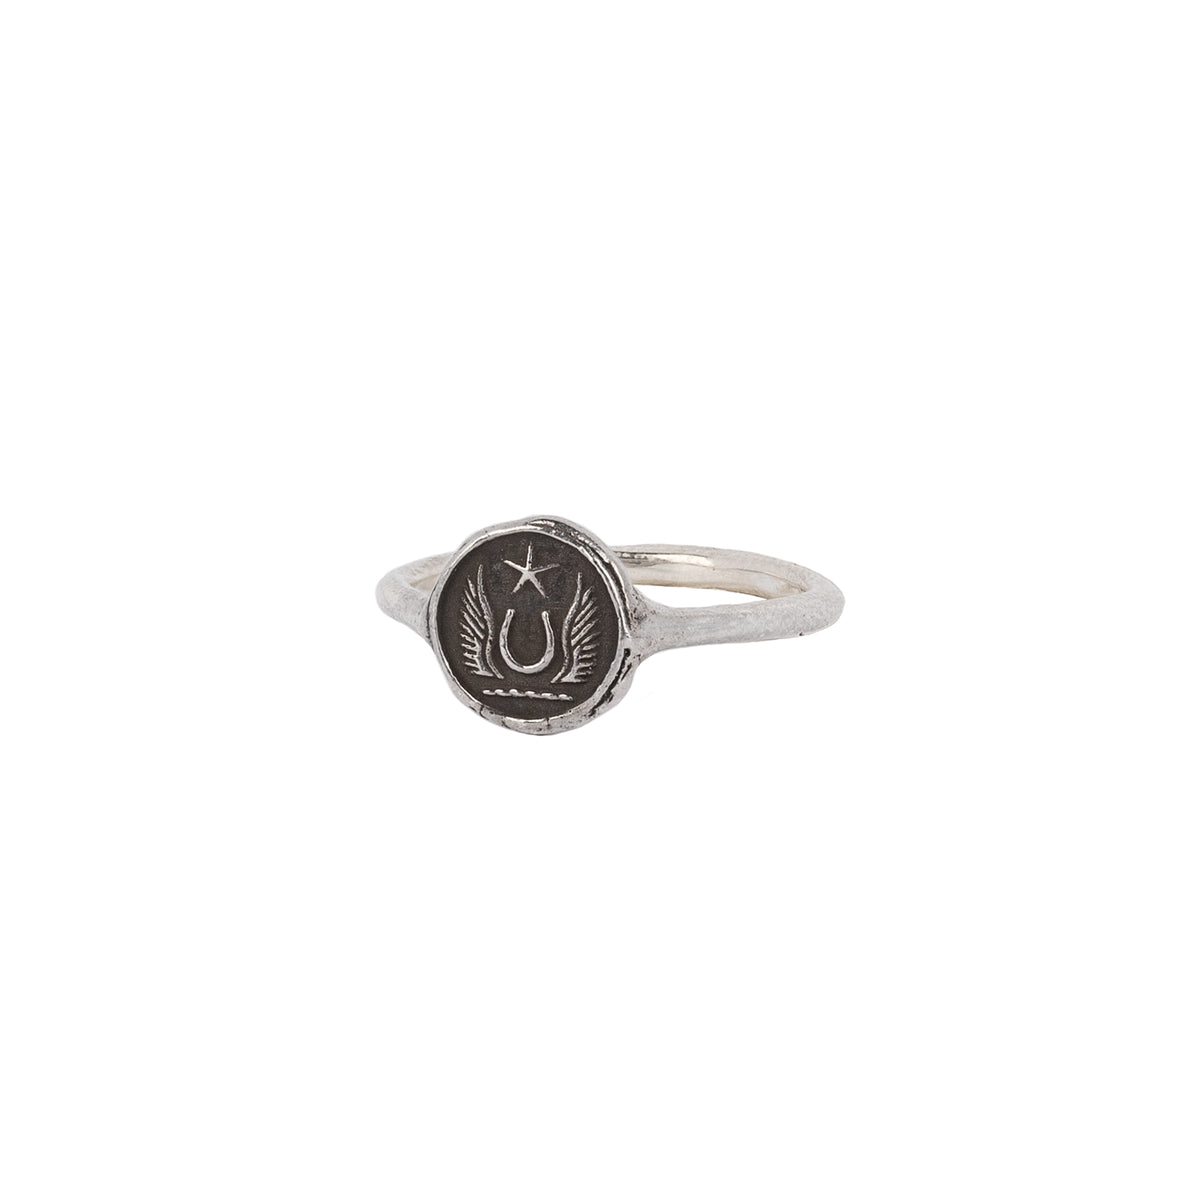 Luck and Protection Mini Talisman Ring